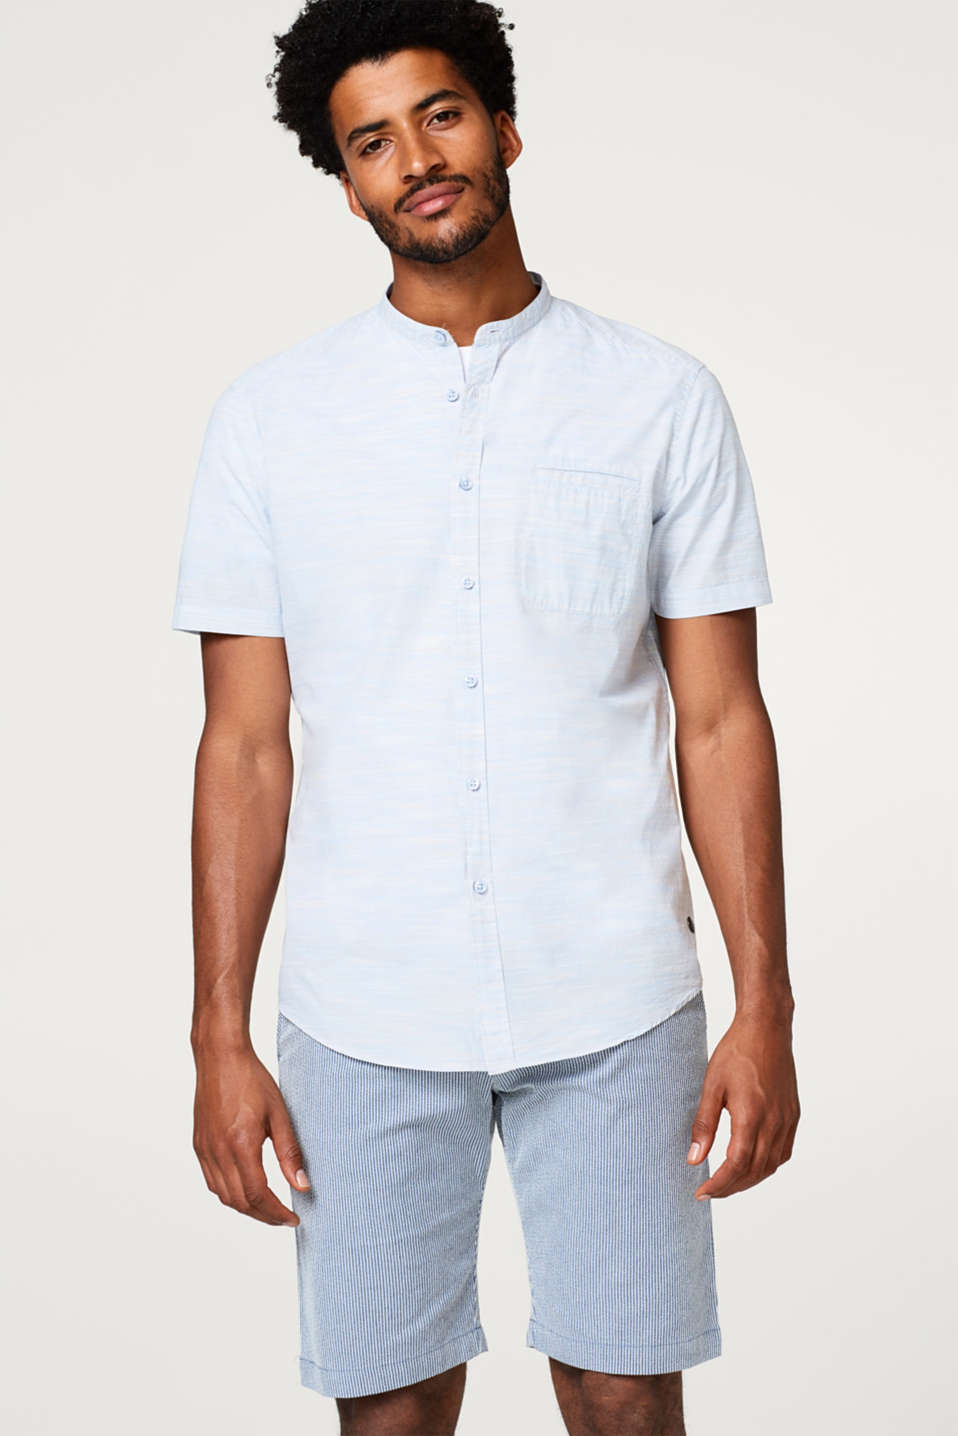 Esprit - Space-dyed, short sleeve shirt with a stand-up collar